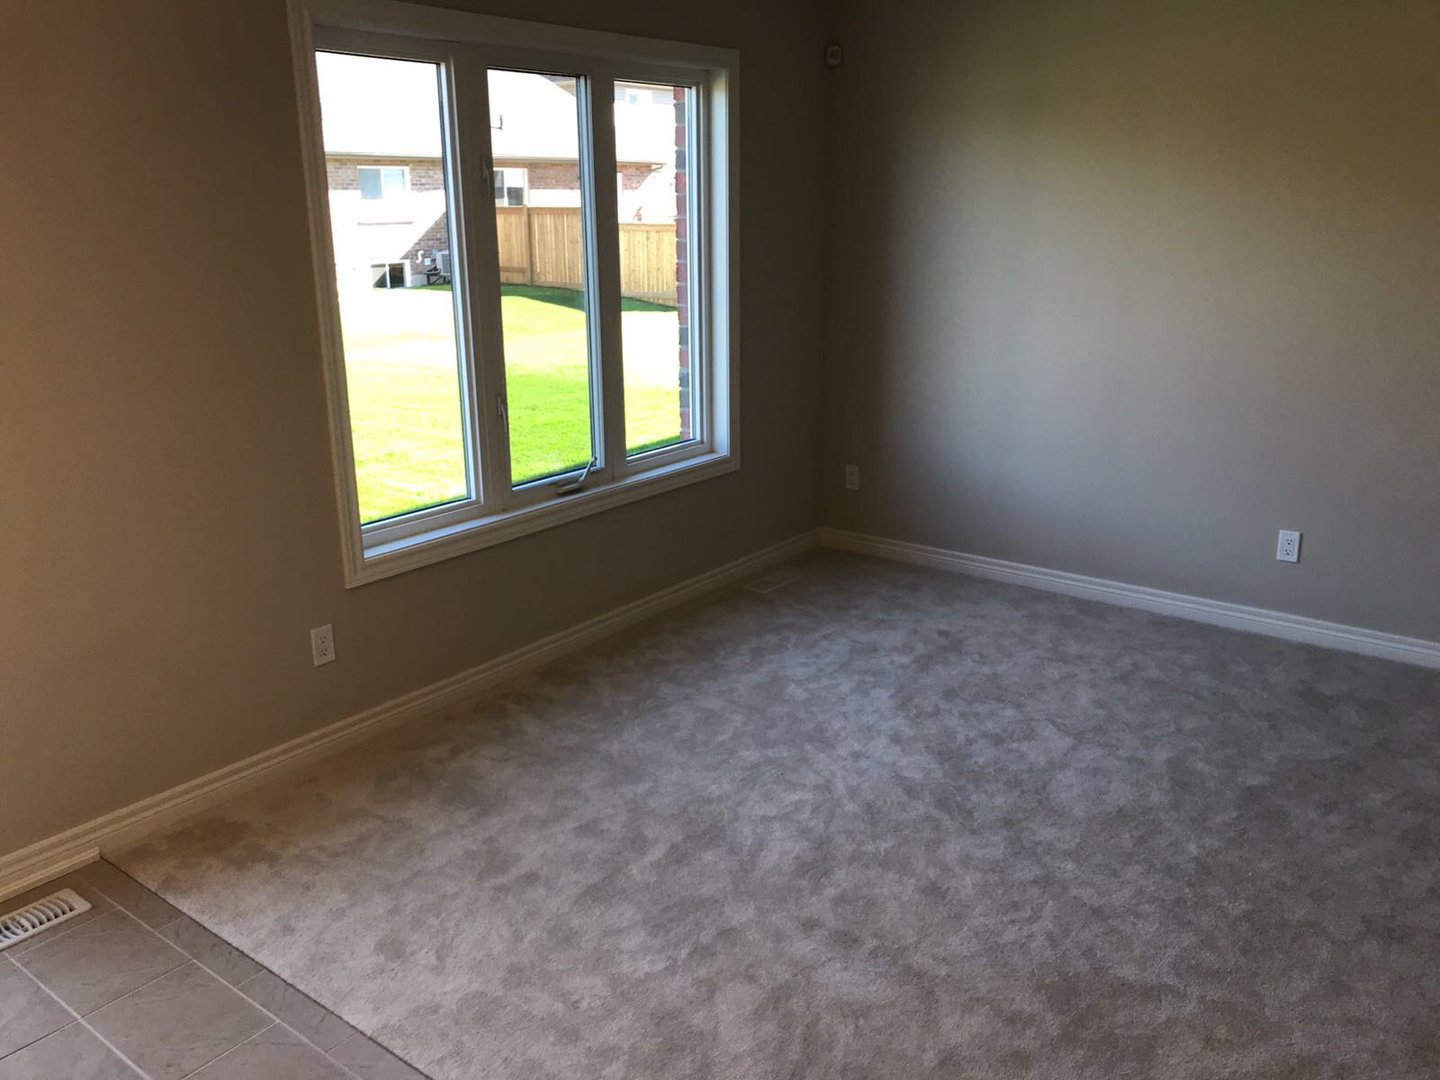 Apartment for rent at 285 Silverwood Ave, Welland, ON. This is the empty room with tile floor, natural light and carpet.